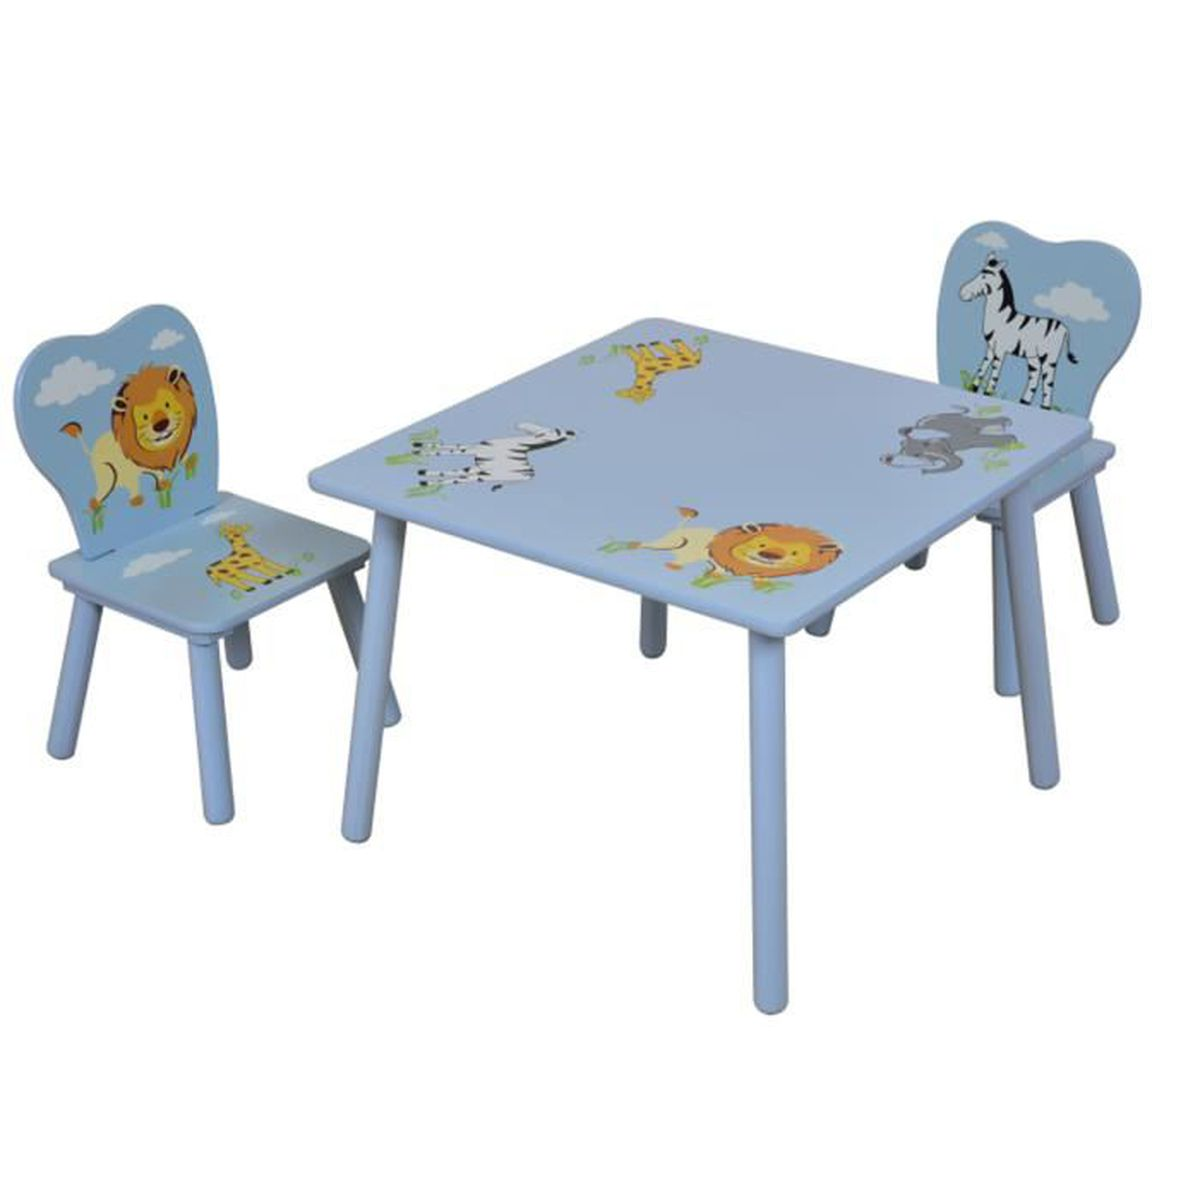 ensemble table et 2 chaises pour enfant en bois coloris bleu motif animaux achat vente table. Black Bedroom Furniture Sets. Home Design Ideas